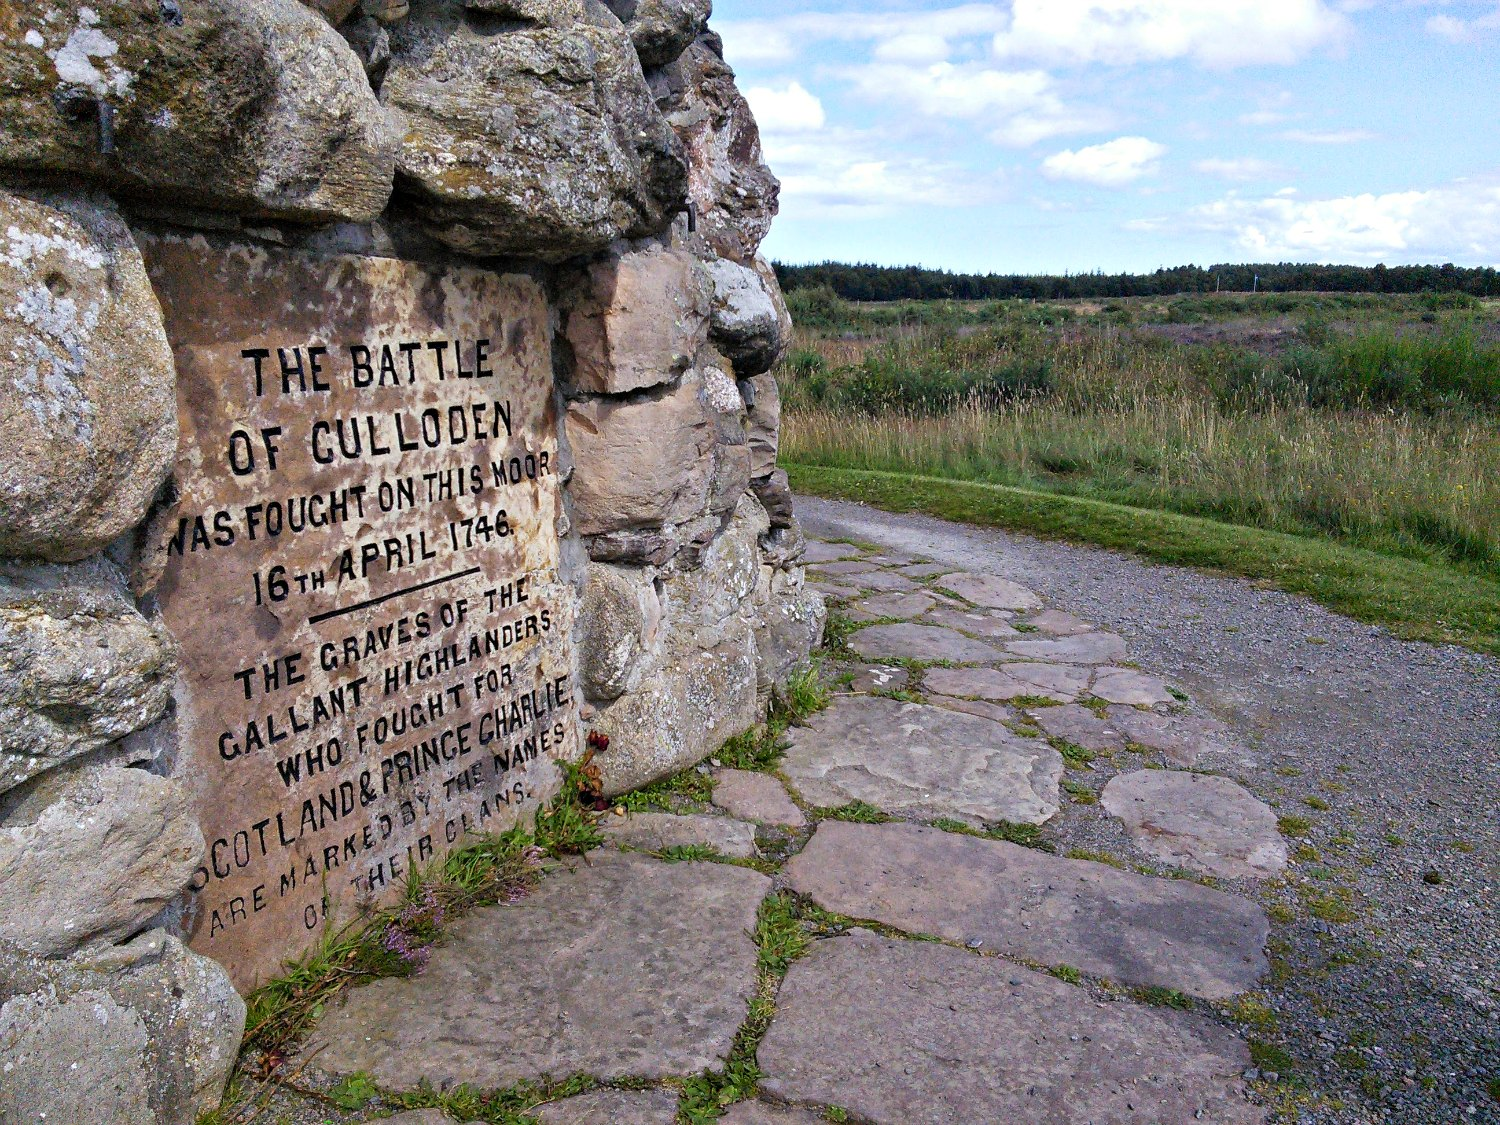 The Memorial Cairn on the battlefield of Culloden. It was erected in 1881 by Duncan Forbes of Culloden in memory of the fallen Jacobites.